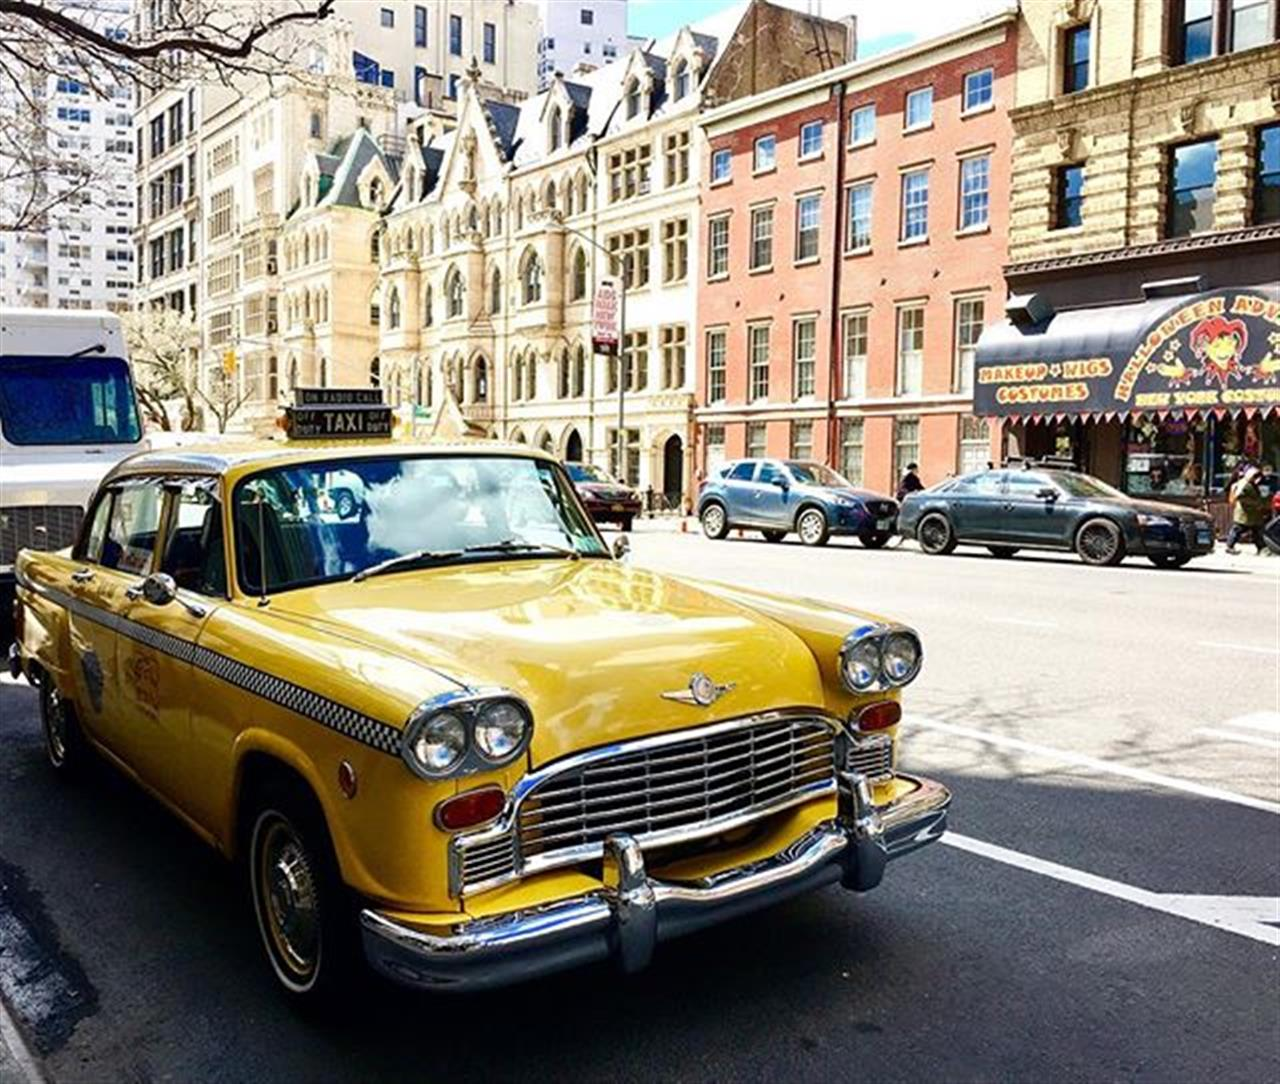 "From the Series """"This is my Town"""" (iPhone shots) Da S├®rie """"Minha Cidade"""" I just love the charm of Old New York!! Old yellow taxi in front of 111 Fourth Avenue, my favorite loft building in NYC. Photo: Wigder Frota #thisismytown #minhacidade #111fourthavenue #newyork #nyc #ilovenewyork #homesweethome #leadingrelocal #exploreyourhood #halsteadproperty #travel #photography #instatravel #travelphoto #traveltheworld #travelphotography #wigderfrota #photobywigderfrota #travelpicsdaily #tourism #travelblog #travelgram #discover #discovery #nationalgeographic #lonelyplanet #sharetravelpics  #instadaily #instagood #instagram"